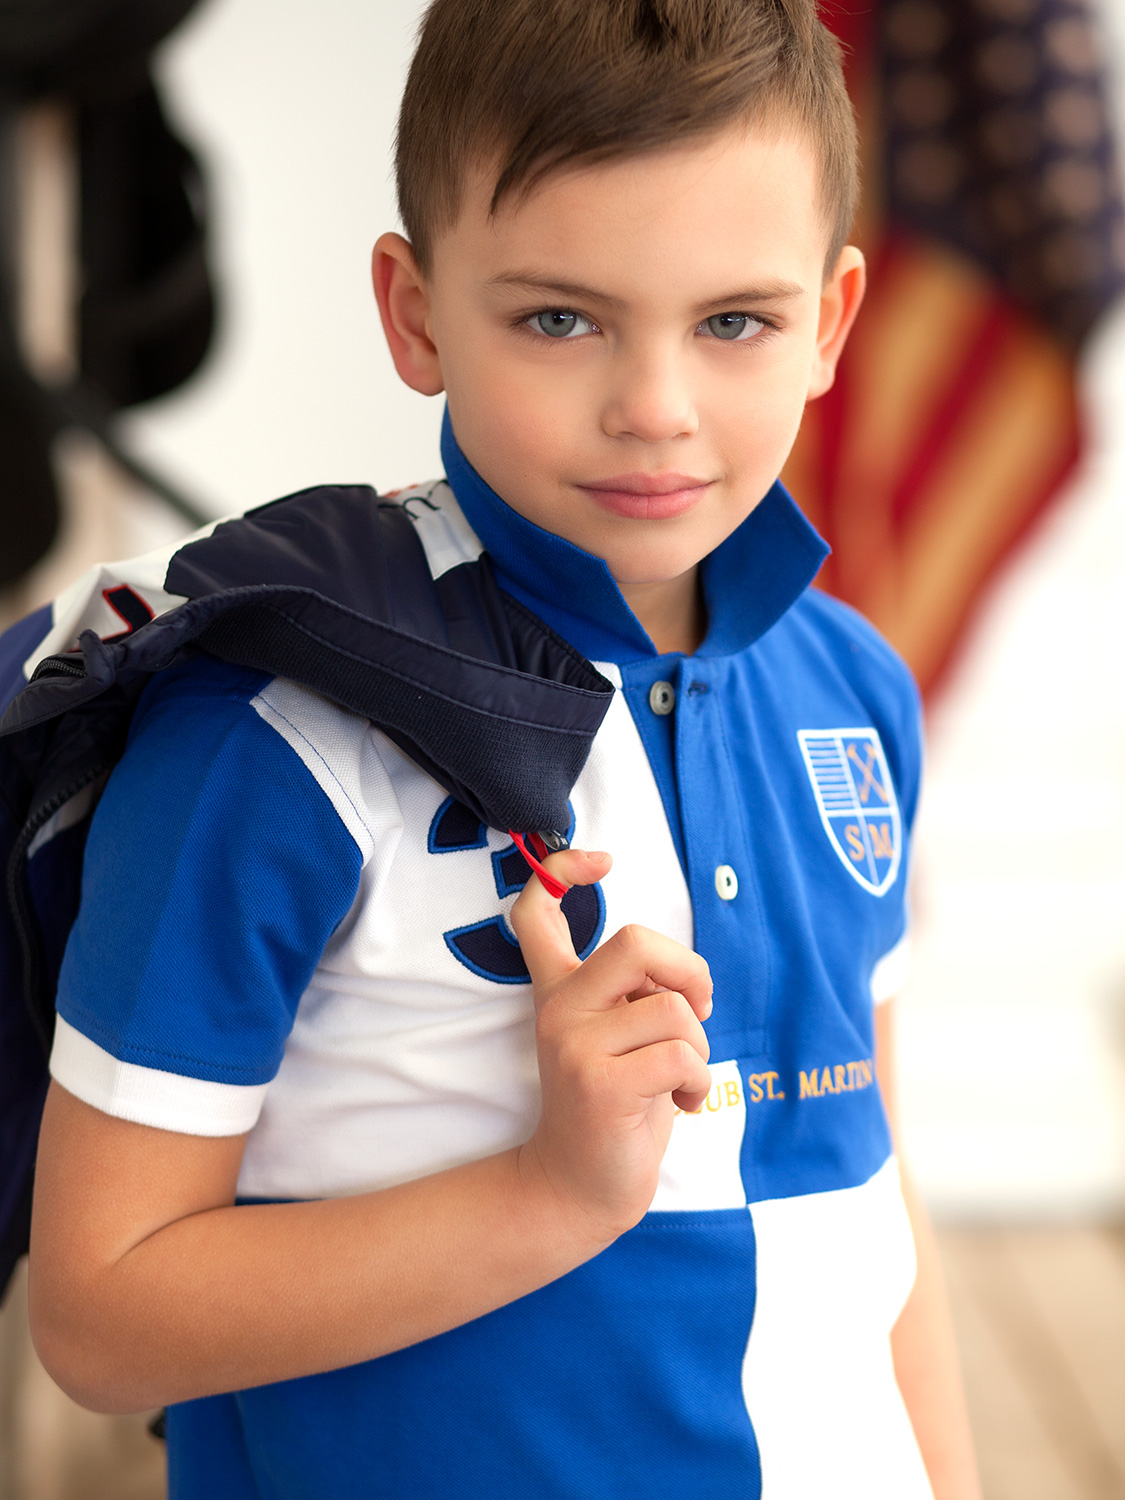 agnzia-comunicazione-napoli-roberto-guariglia-advertising-portfolio-work-fashion-polo-club-st-martin-fashion-kids-brand-2.jpg